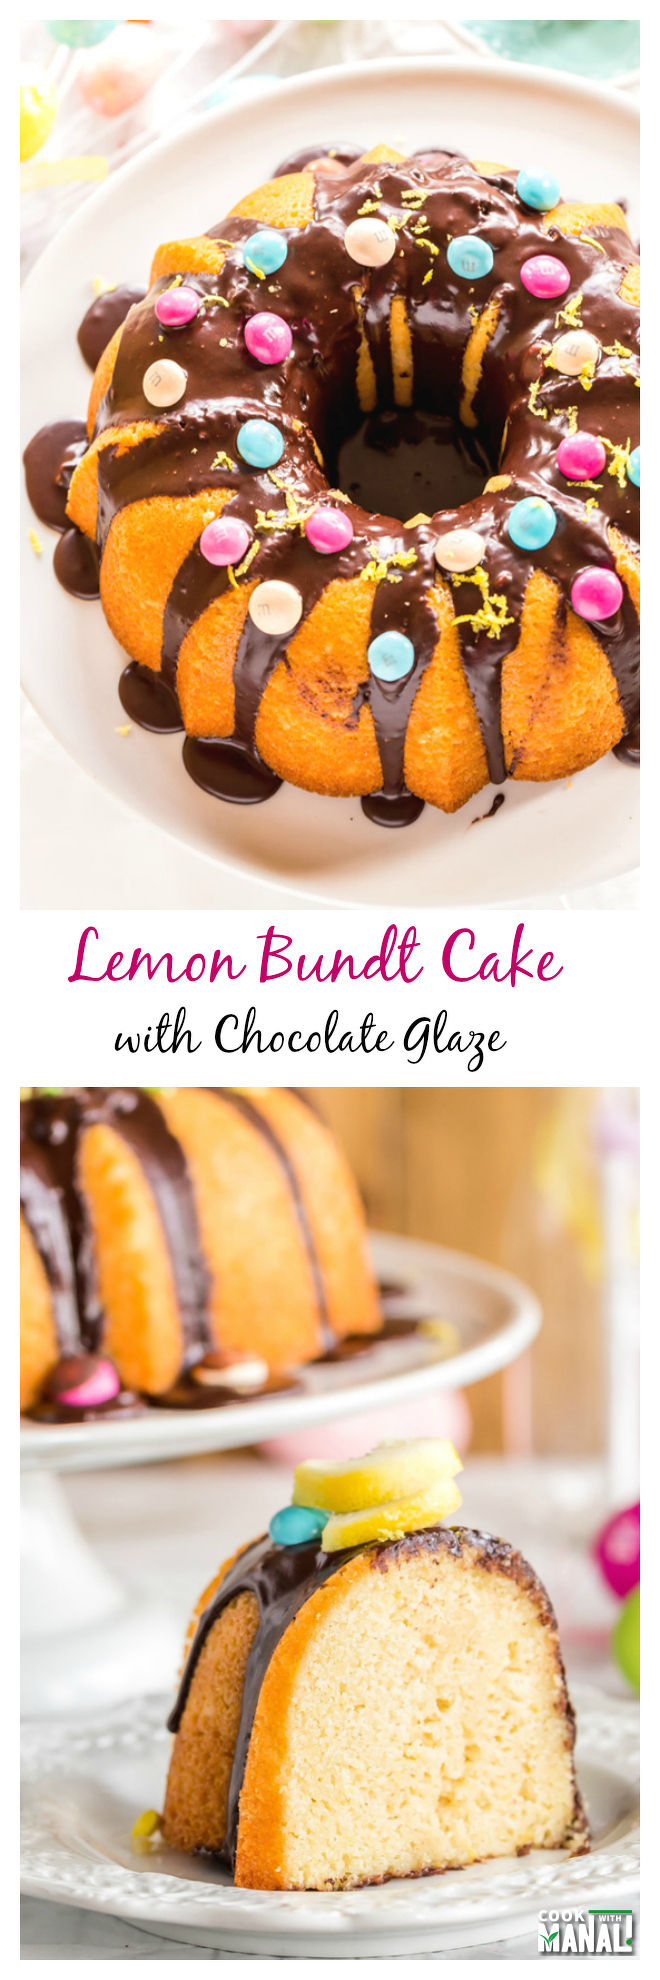 Lemon Bundt Cake with Chocolate Glaze Collage